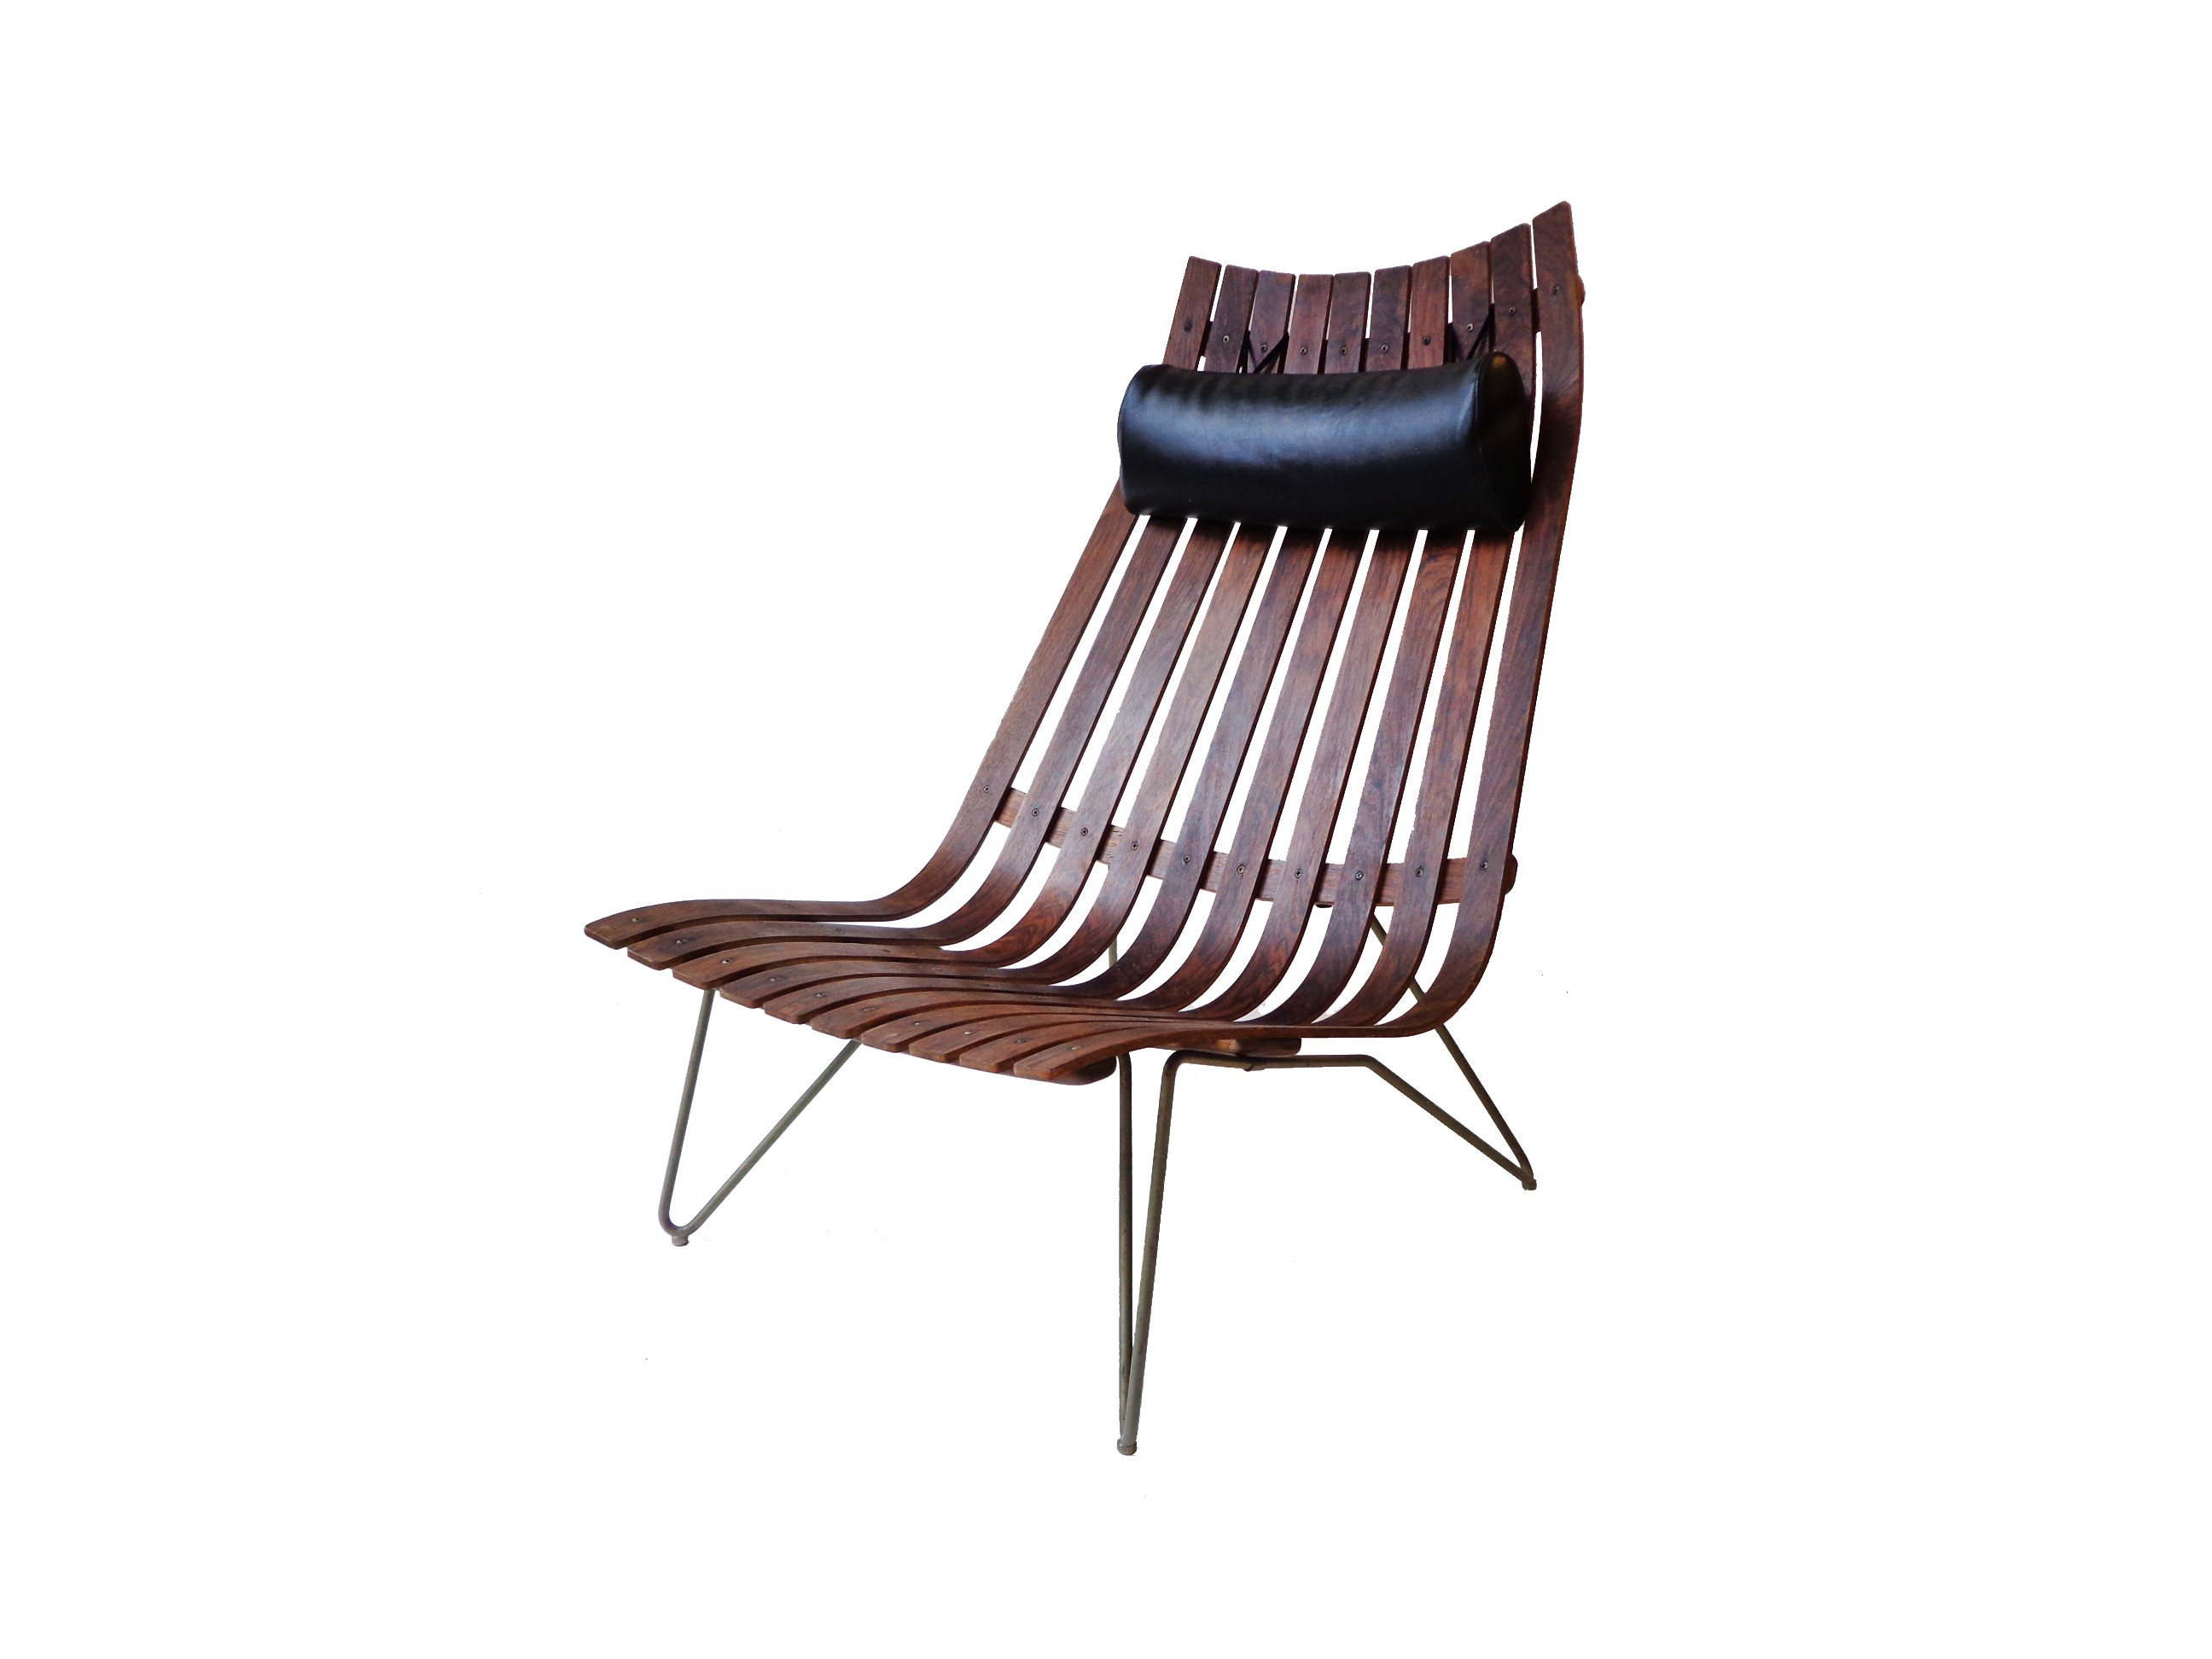 Hans Brattrud 'Scandia' Lounge Chair